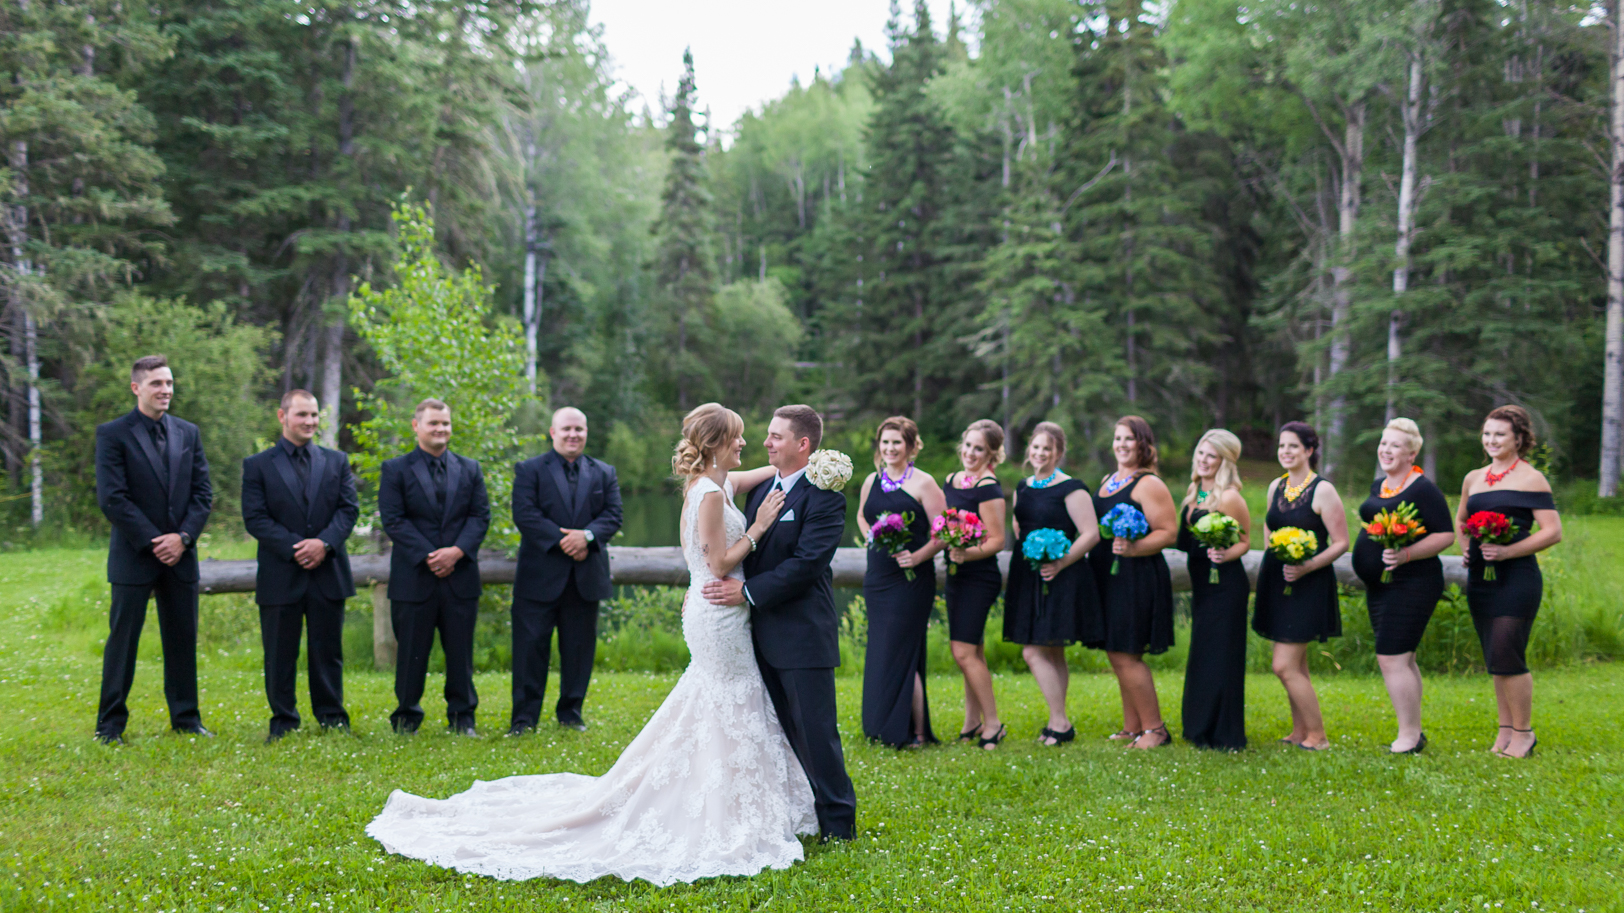 Outdoor Country Wedding Party Portraits